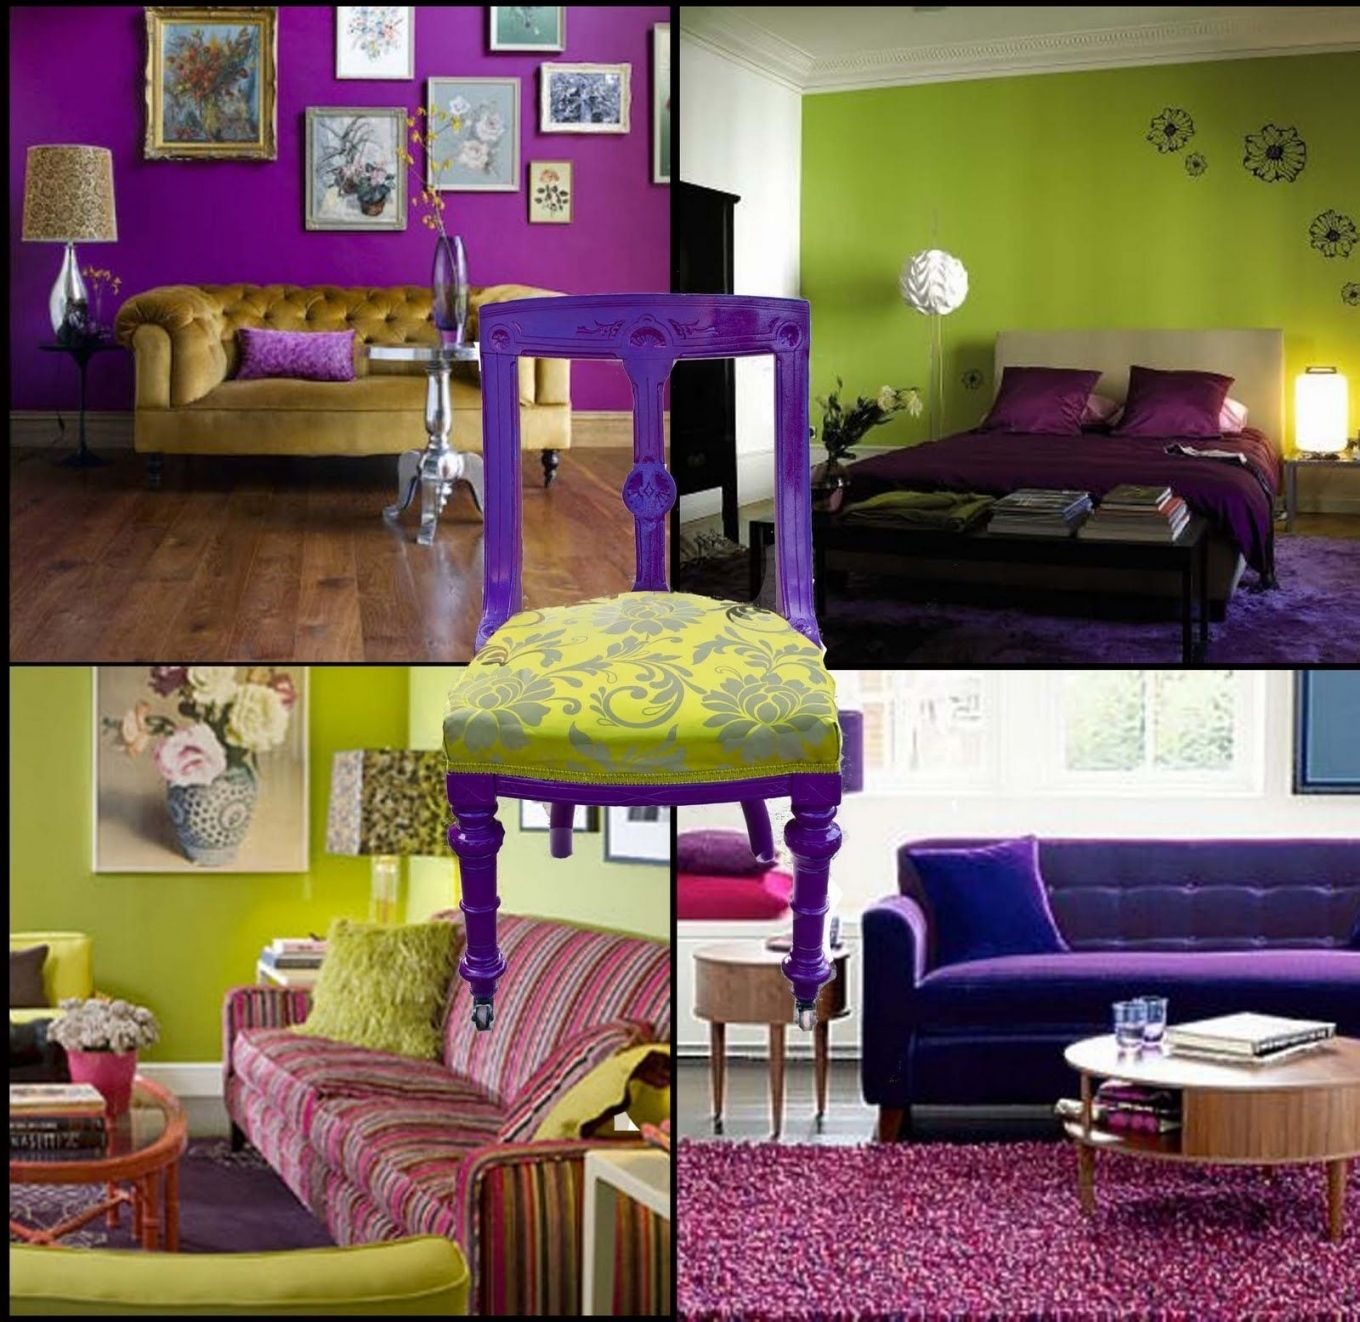 Best Of Lime Green And Purple Living Room Ideas Jh121m2 Https Sherriematula Com Best Of Lime Green And Purple Living Room Ideas Jh121m Interiores Cuartos Diy